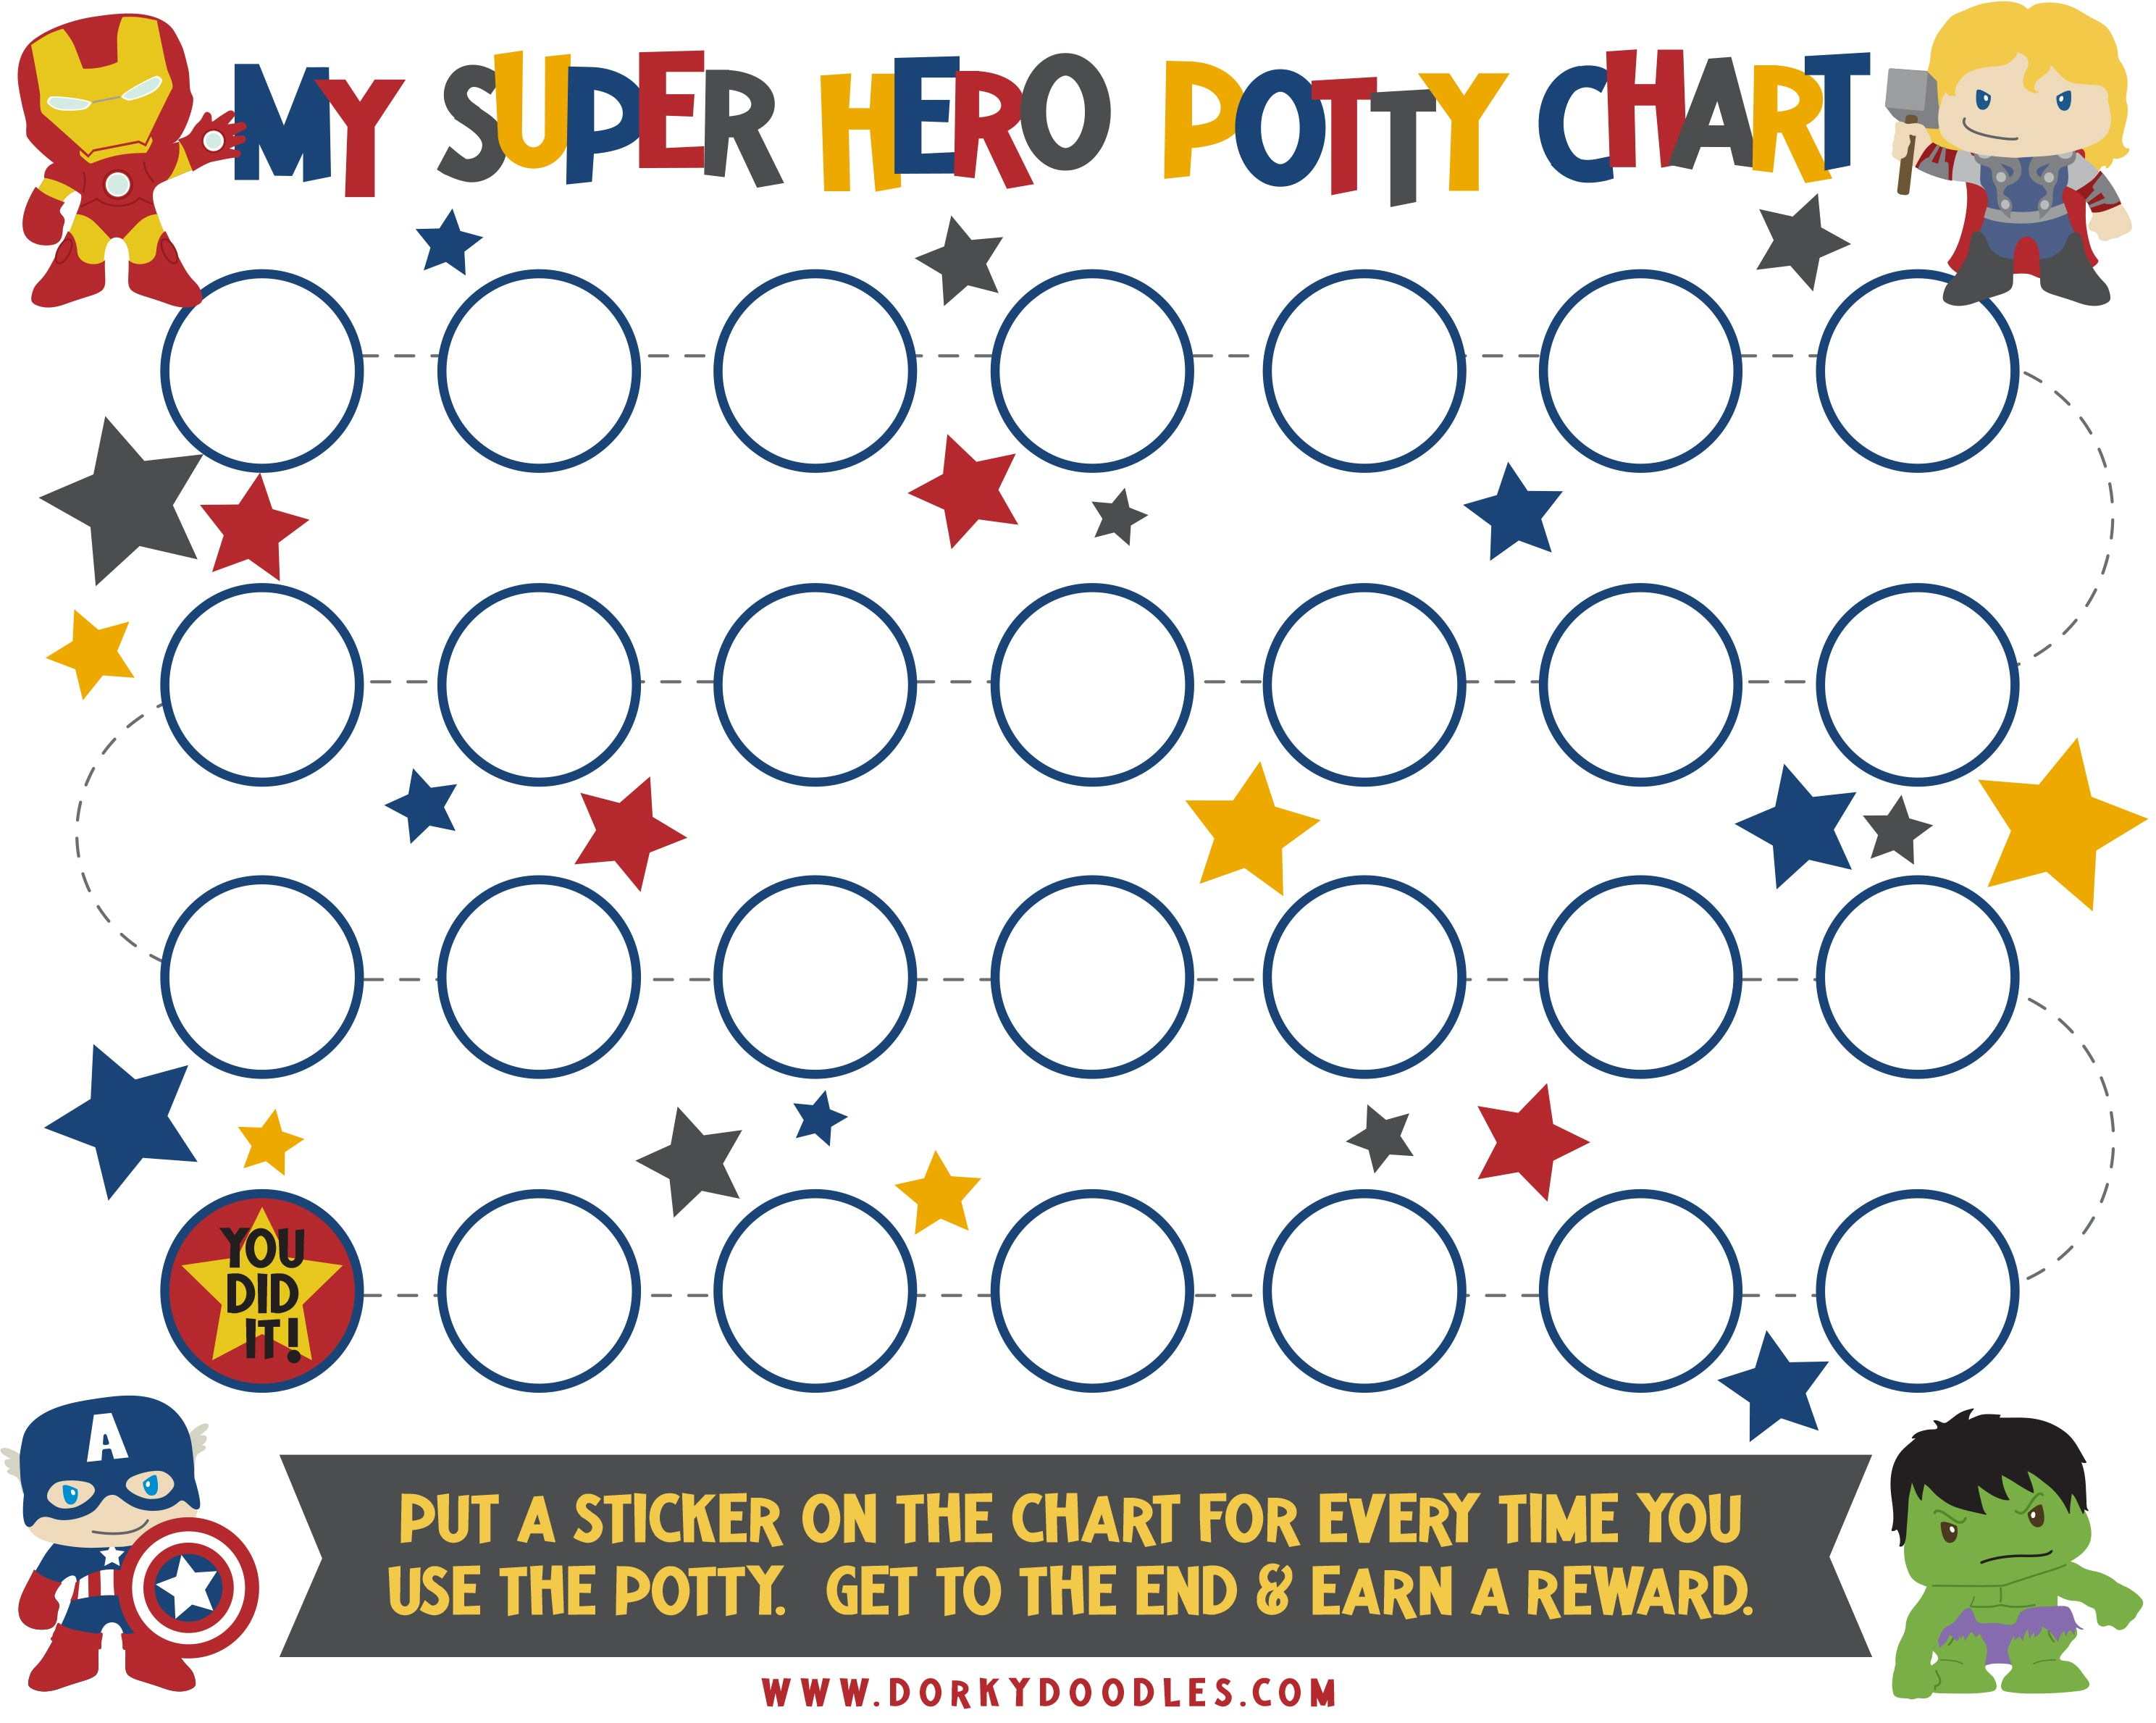 photograph relating to Printable Potty Sticker Chart titled Potty Doing exercises Sticker Chart Dorky Doodles